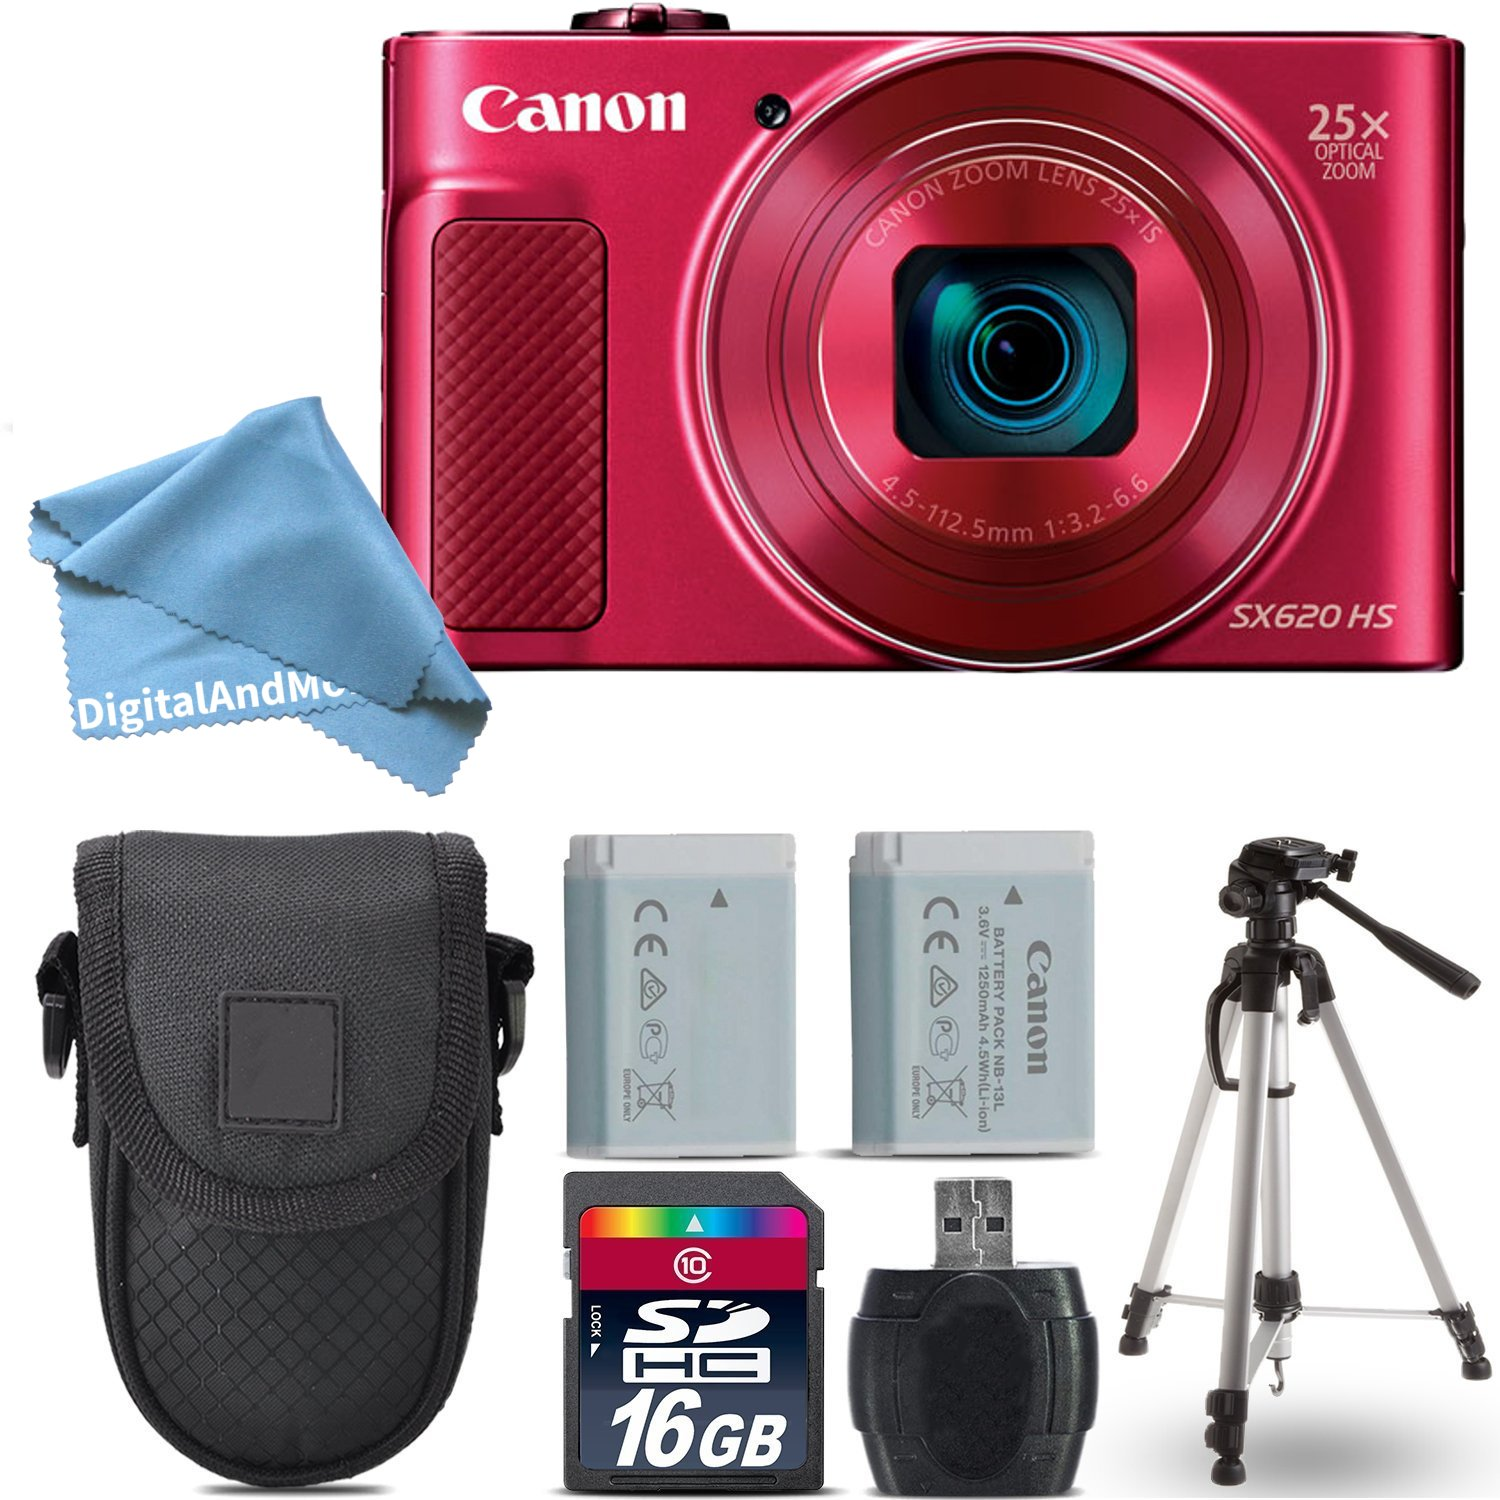 Canon PowerShot SX620 HS Digital Camera (Red) + 16GB Class 10 Memory Card + Backup Battery + Point & Shoot Camera Case + Card Reader + Tripod + Screen Protector + DigitalAndMore Accessory Bundle by DigitalandMore